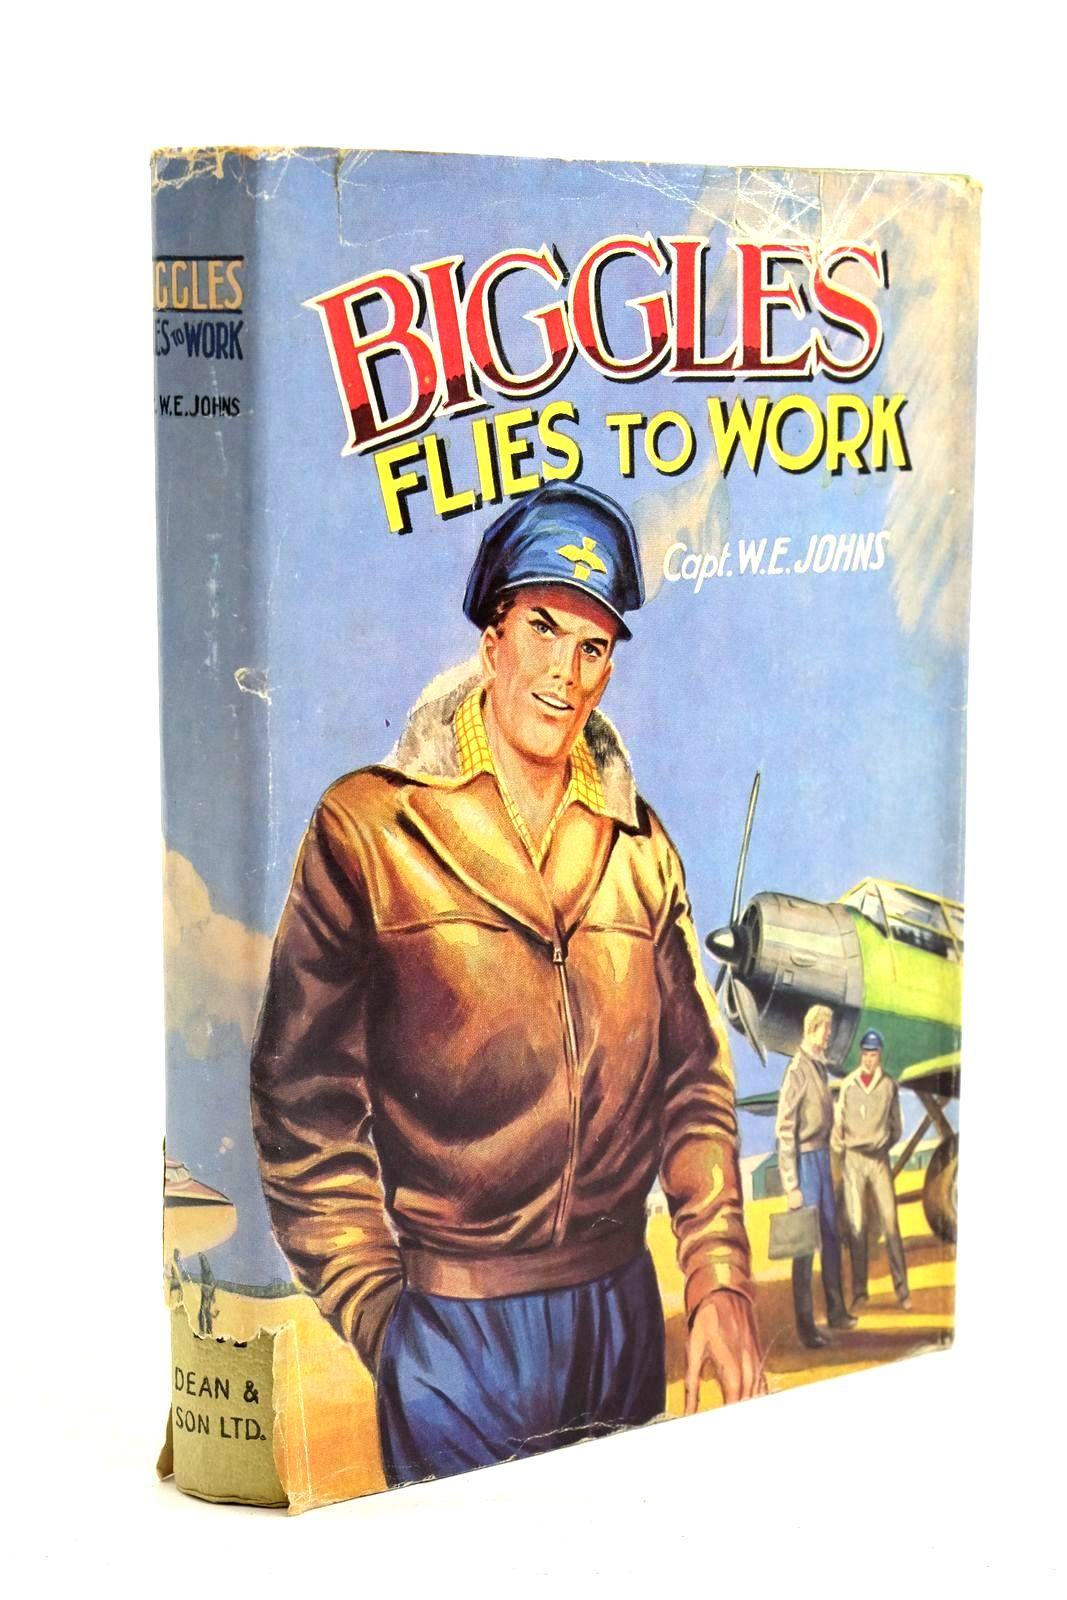 Photo of BIGGLES FLIES TO WORK written by Johns, W.E. published by Dean & Son Ltd. (STOCK CODE: 1320705)  for sale by Stella & Rose's Books